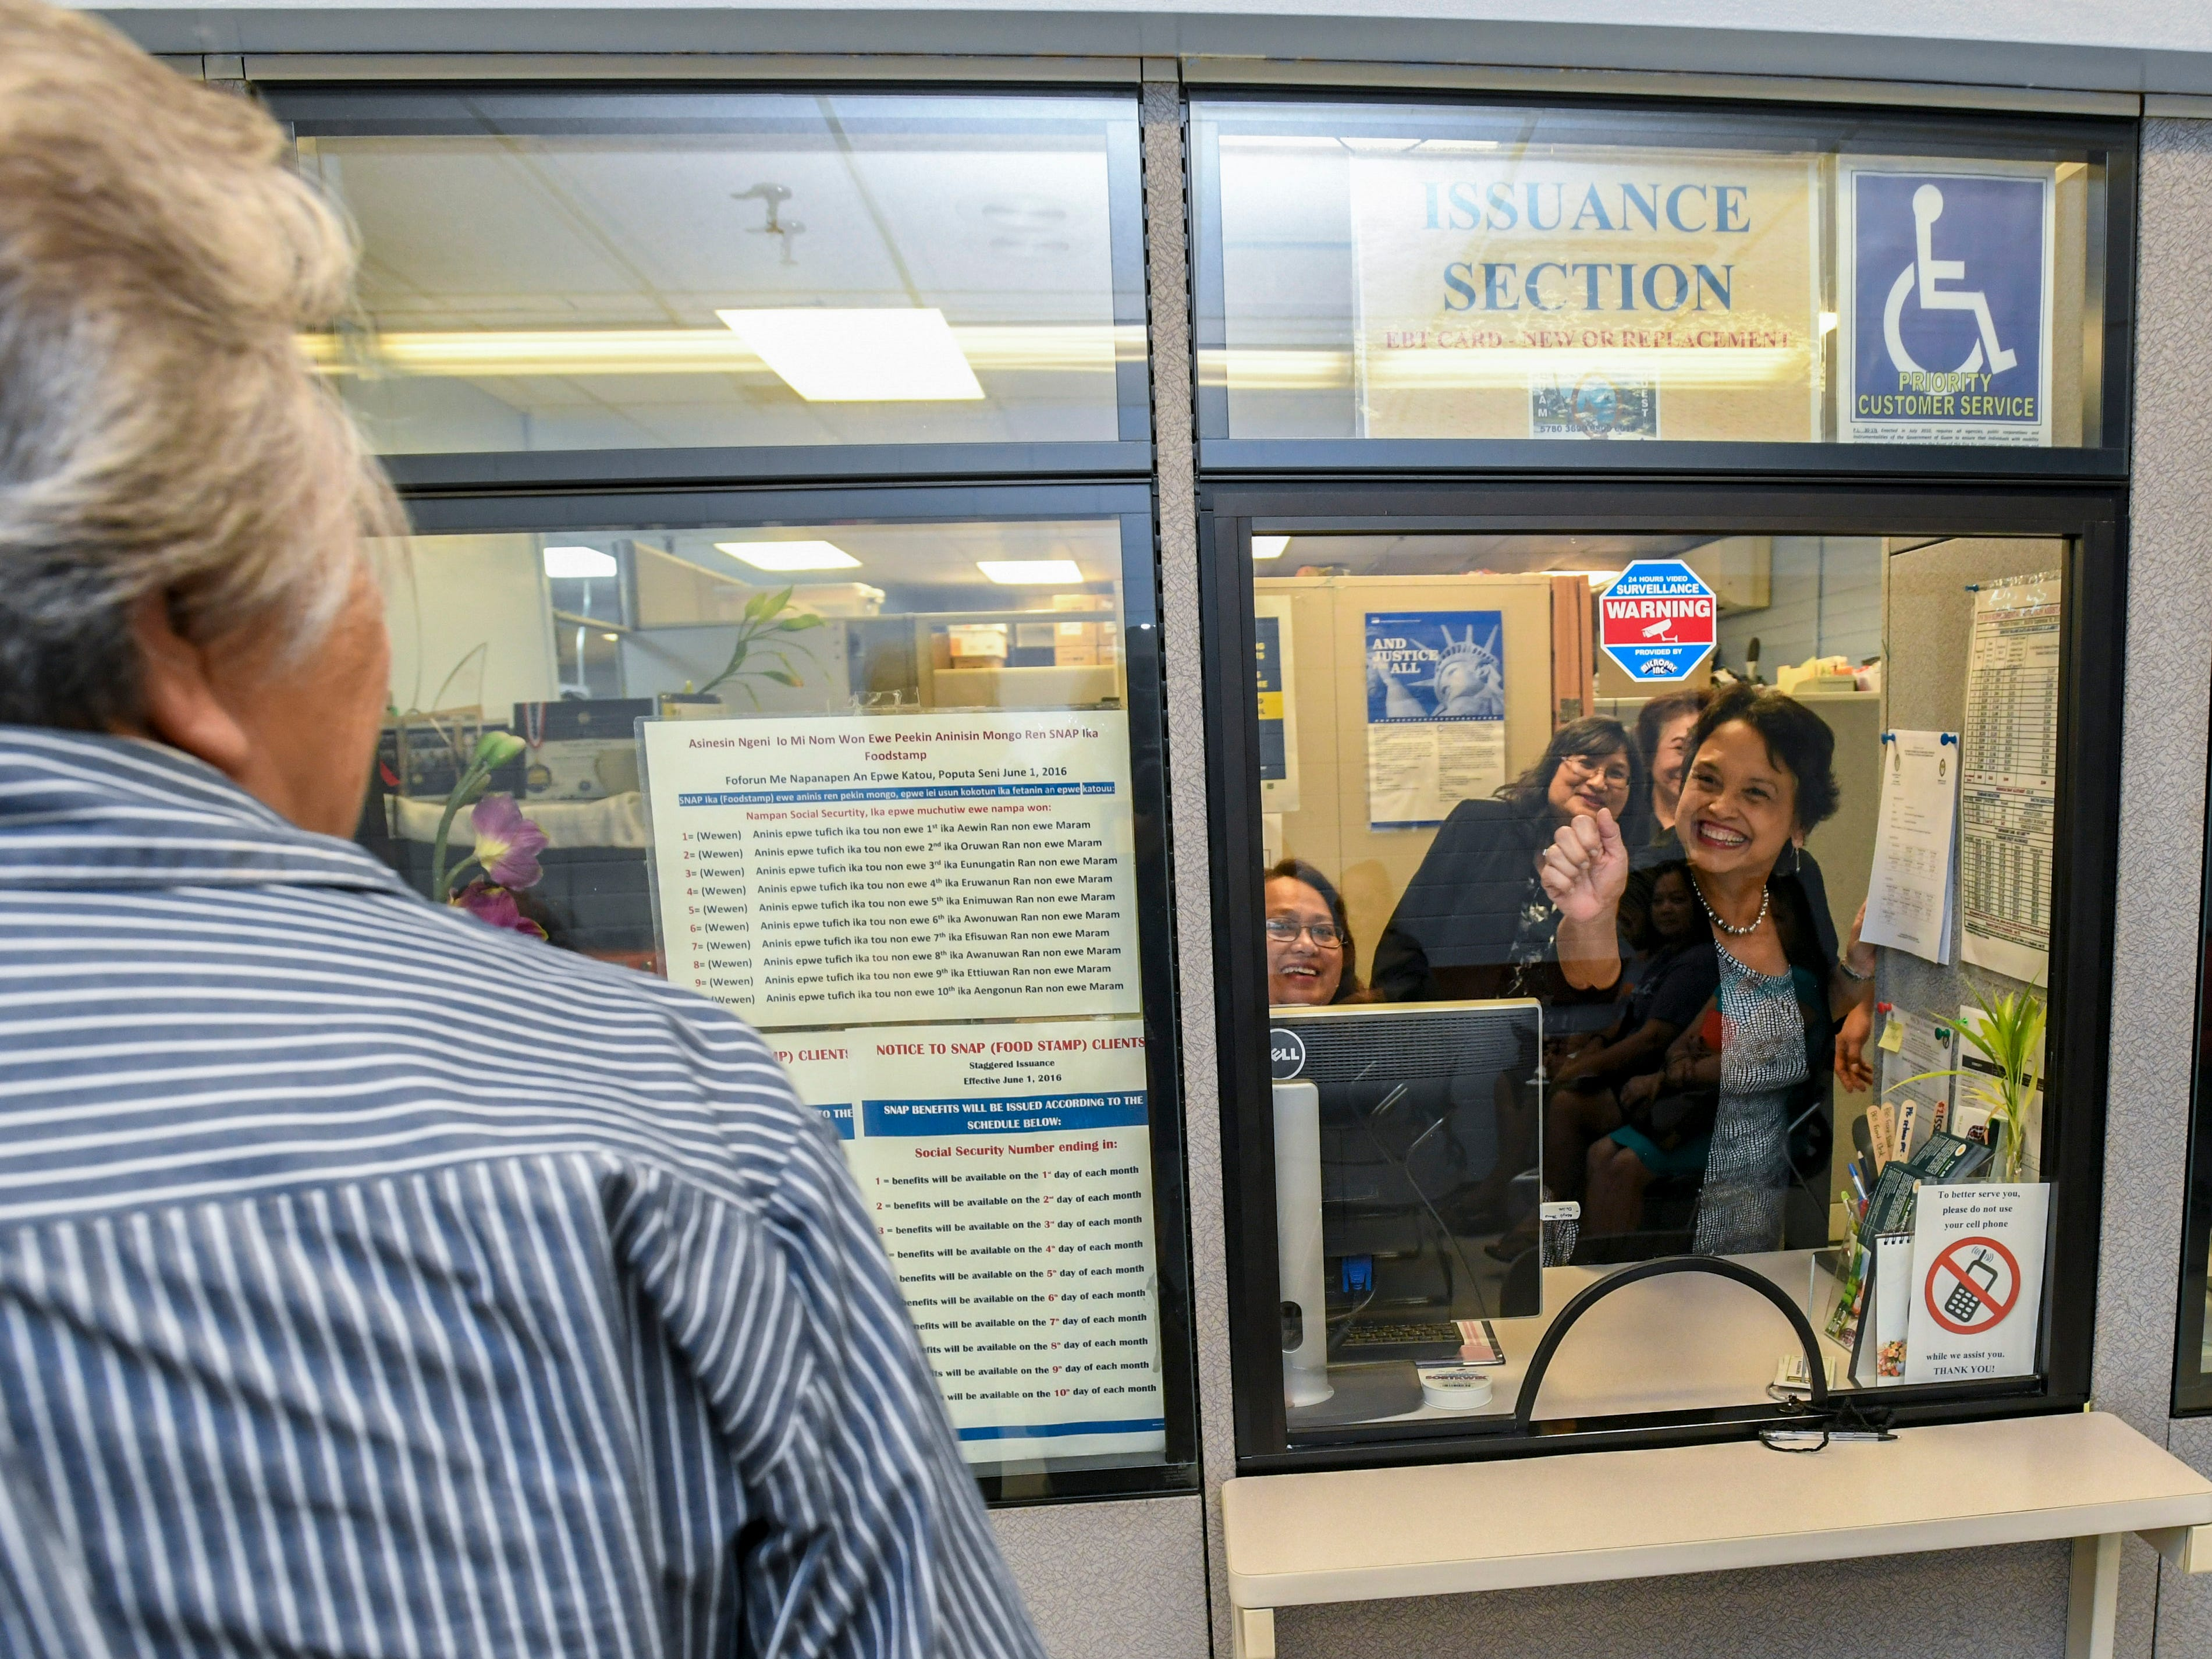 Gov. Lou Leon Guerrero waves to a woman through a glass partition window at the Bureau of Economic Security SNAP/Public Assistance Division at the Department of Public Health and Social Services in Mangilao on Wednesday, Feb. 13, 2019. The governor and Lt. Gov. Josh Tenorio were greeted by the agency's leadership, toured the healthcare facility and met with staff members and other stakeholders.